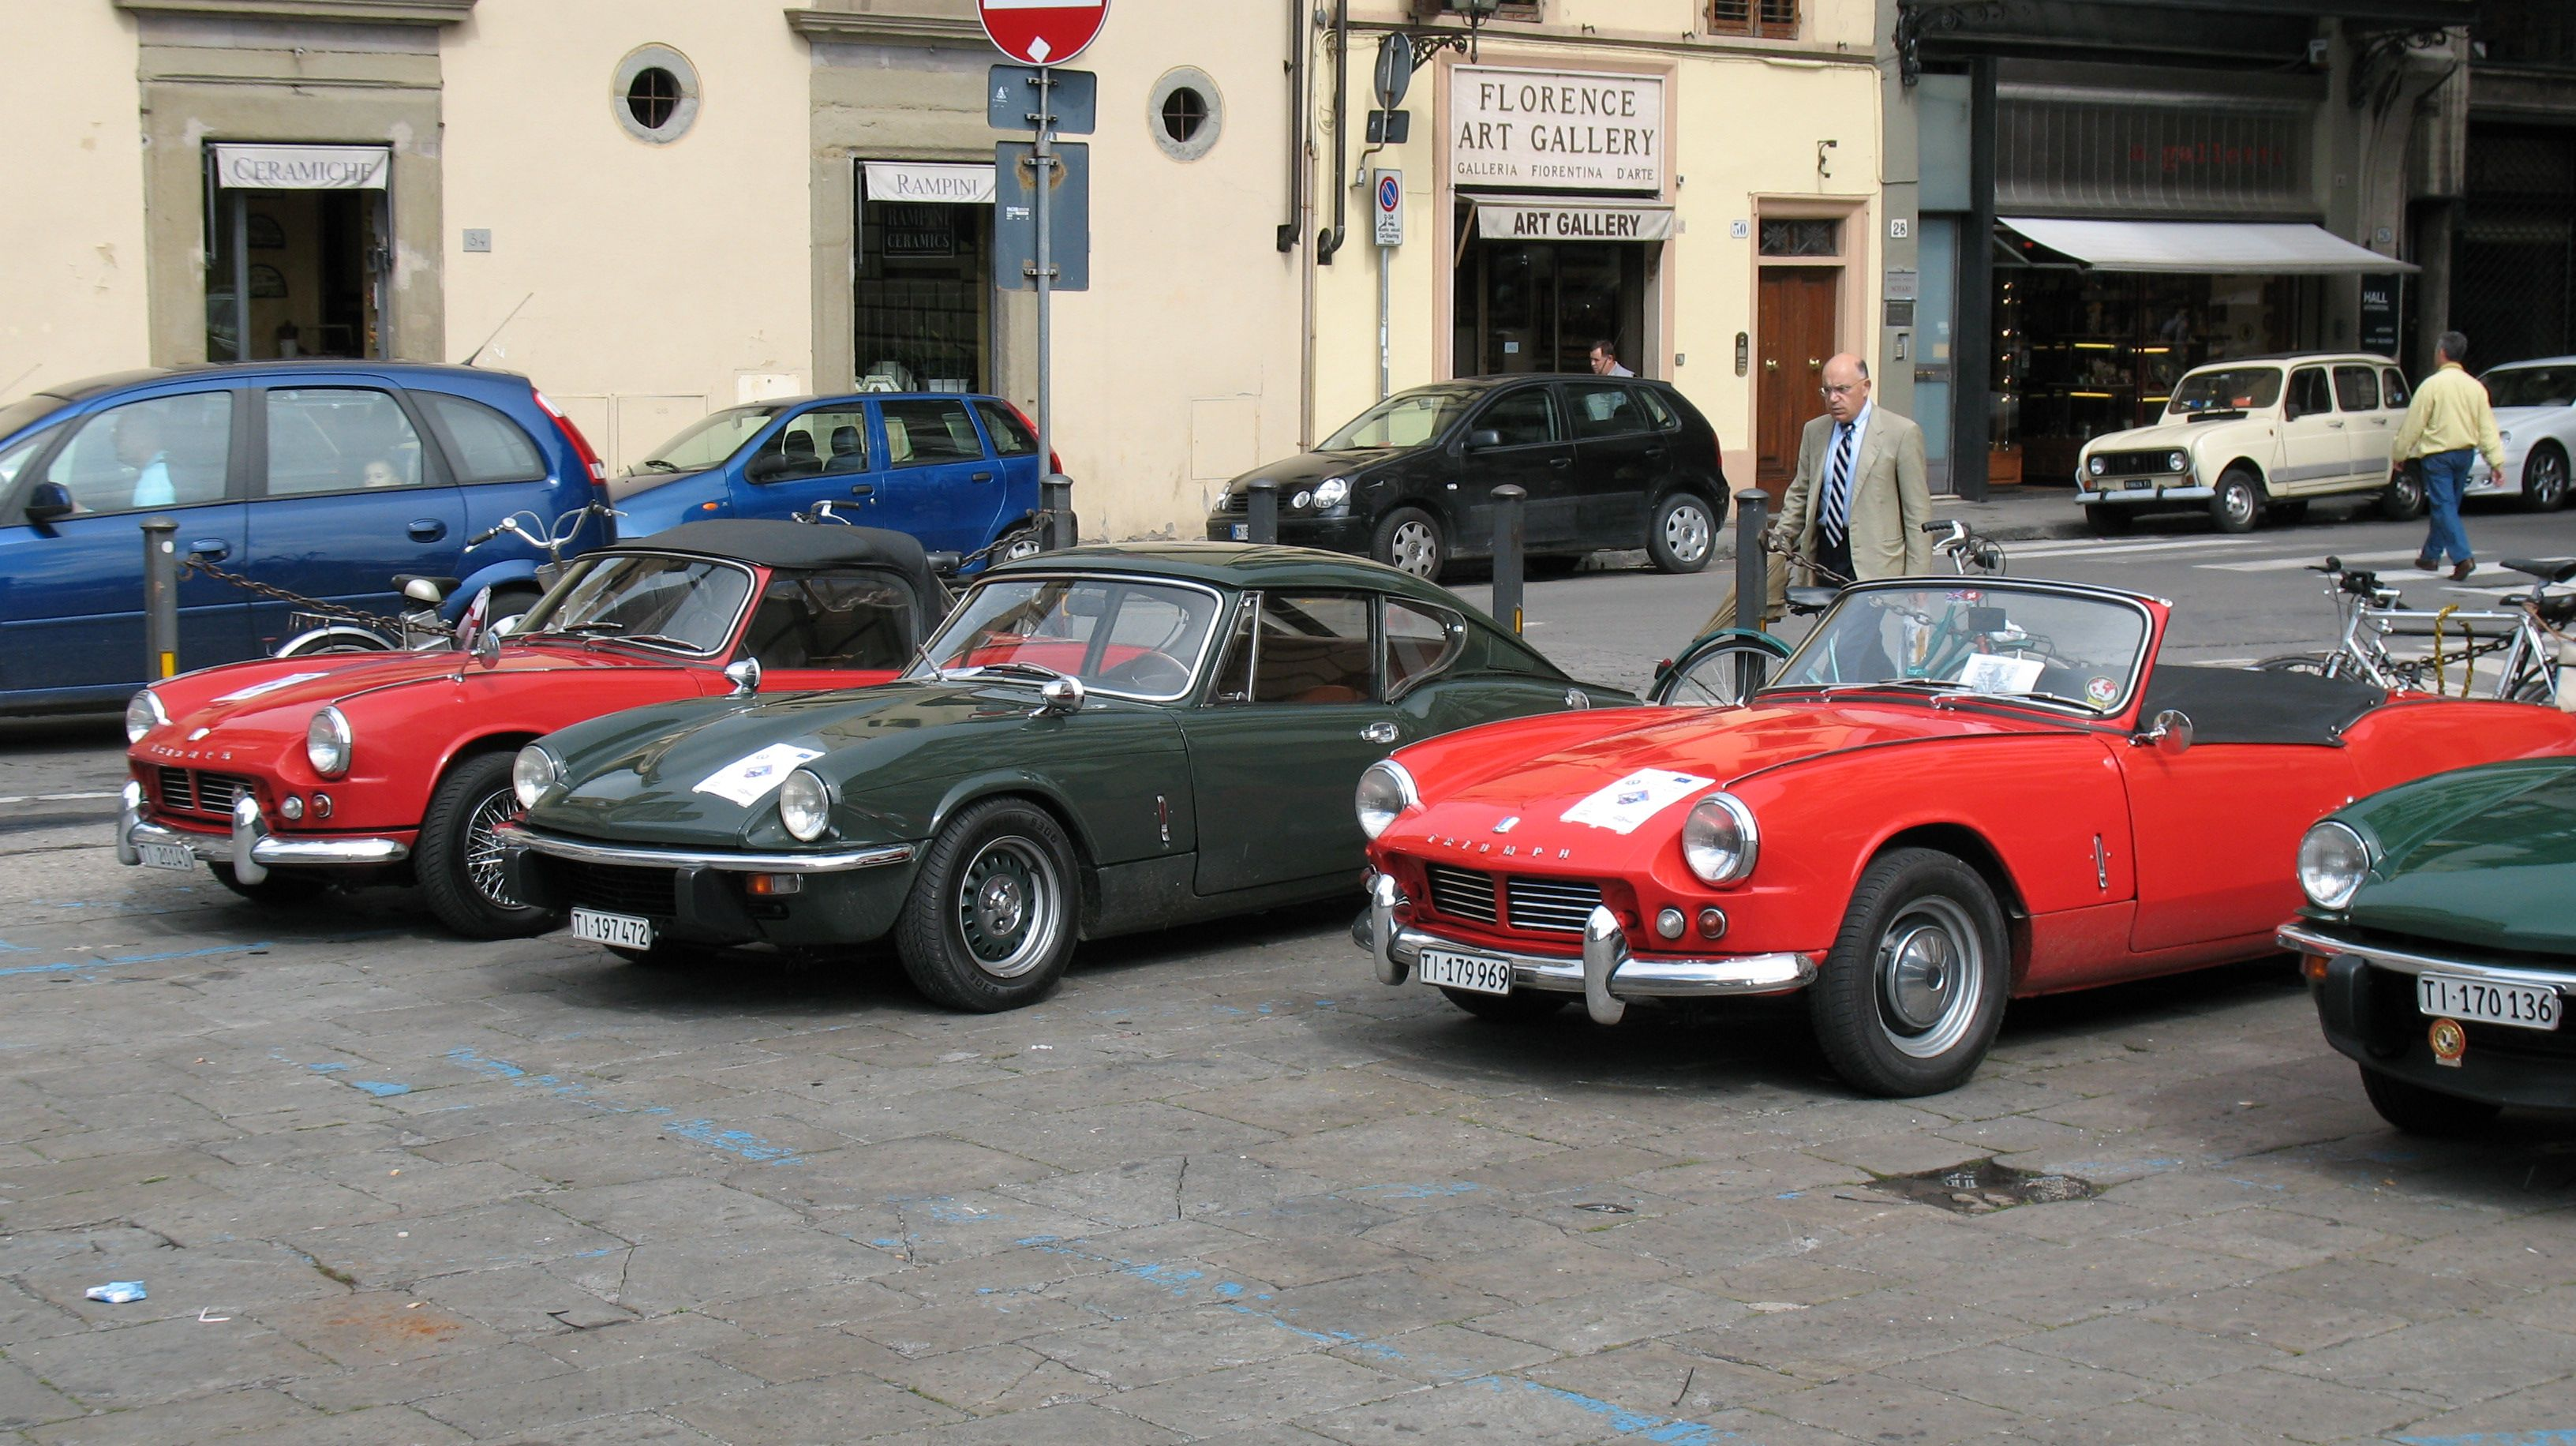 More old cars in Italy | Cars | Pinterest | Italy and Cars